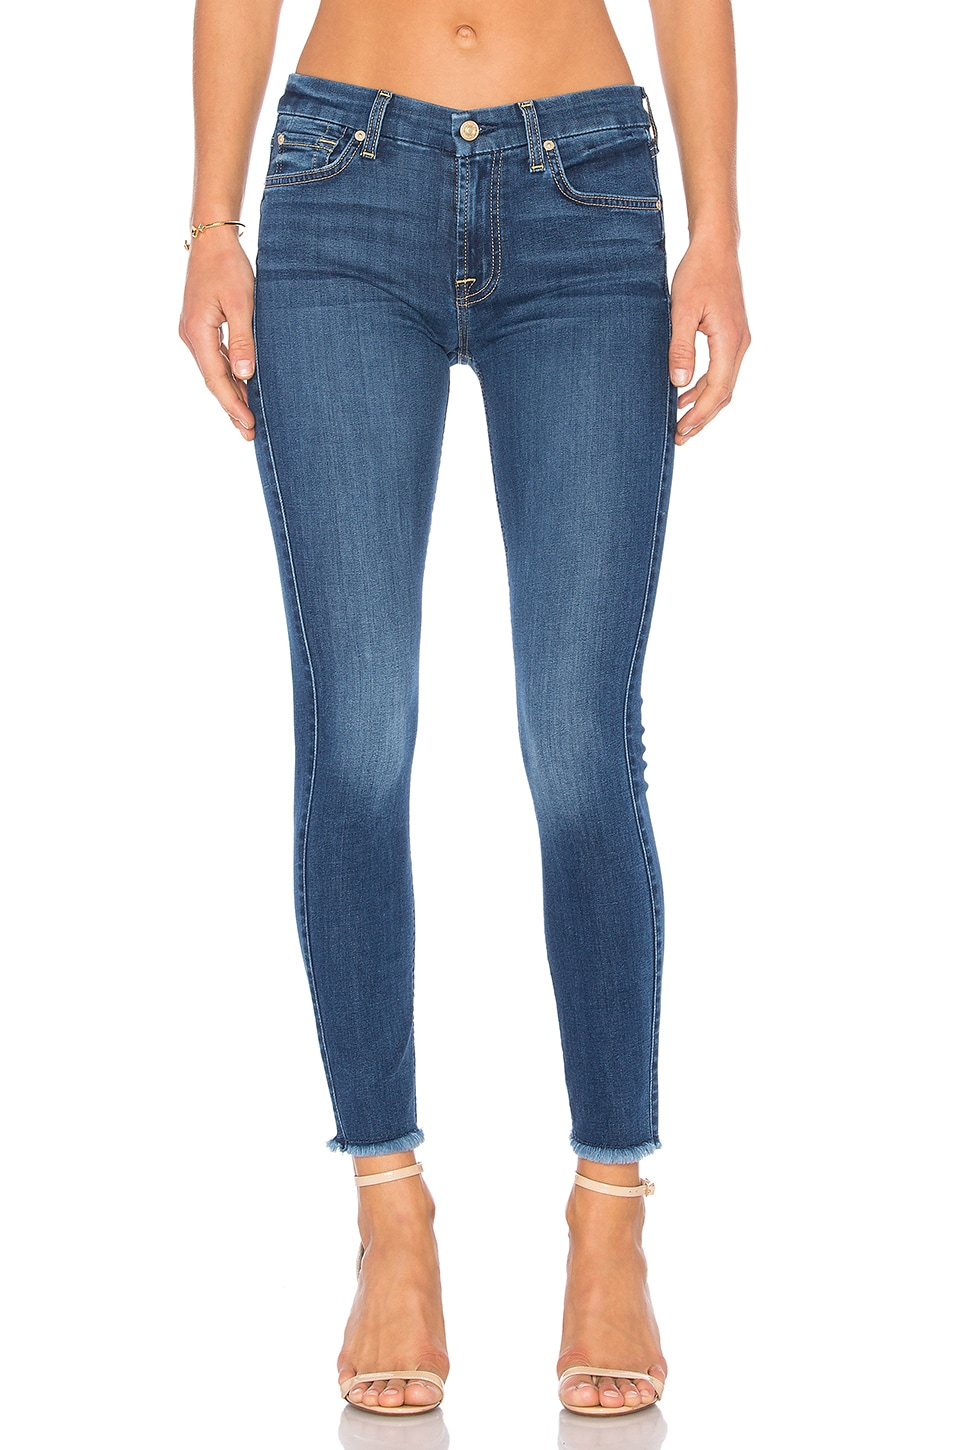 7 For All Mankind B(Air) Ankle Skinny in Reign